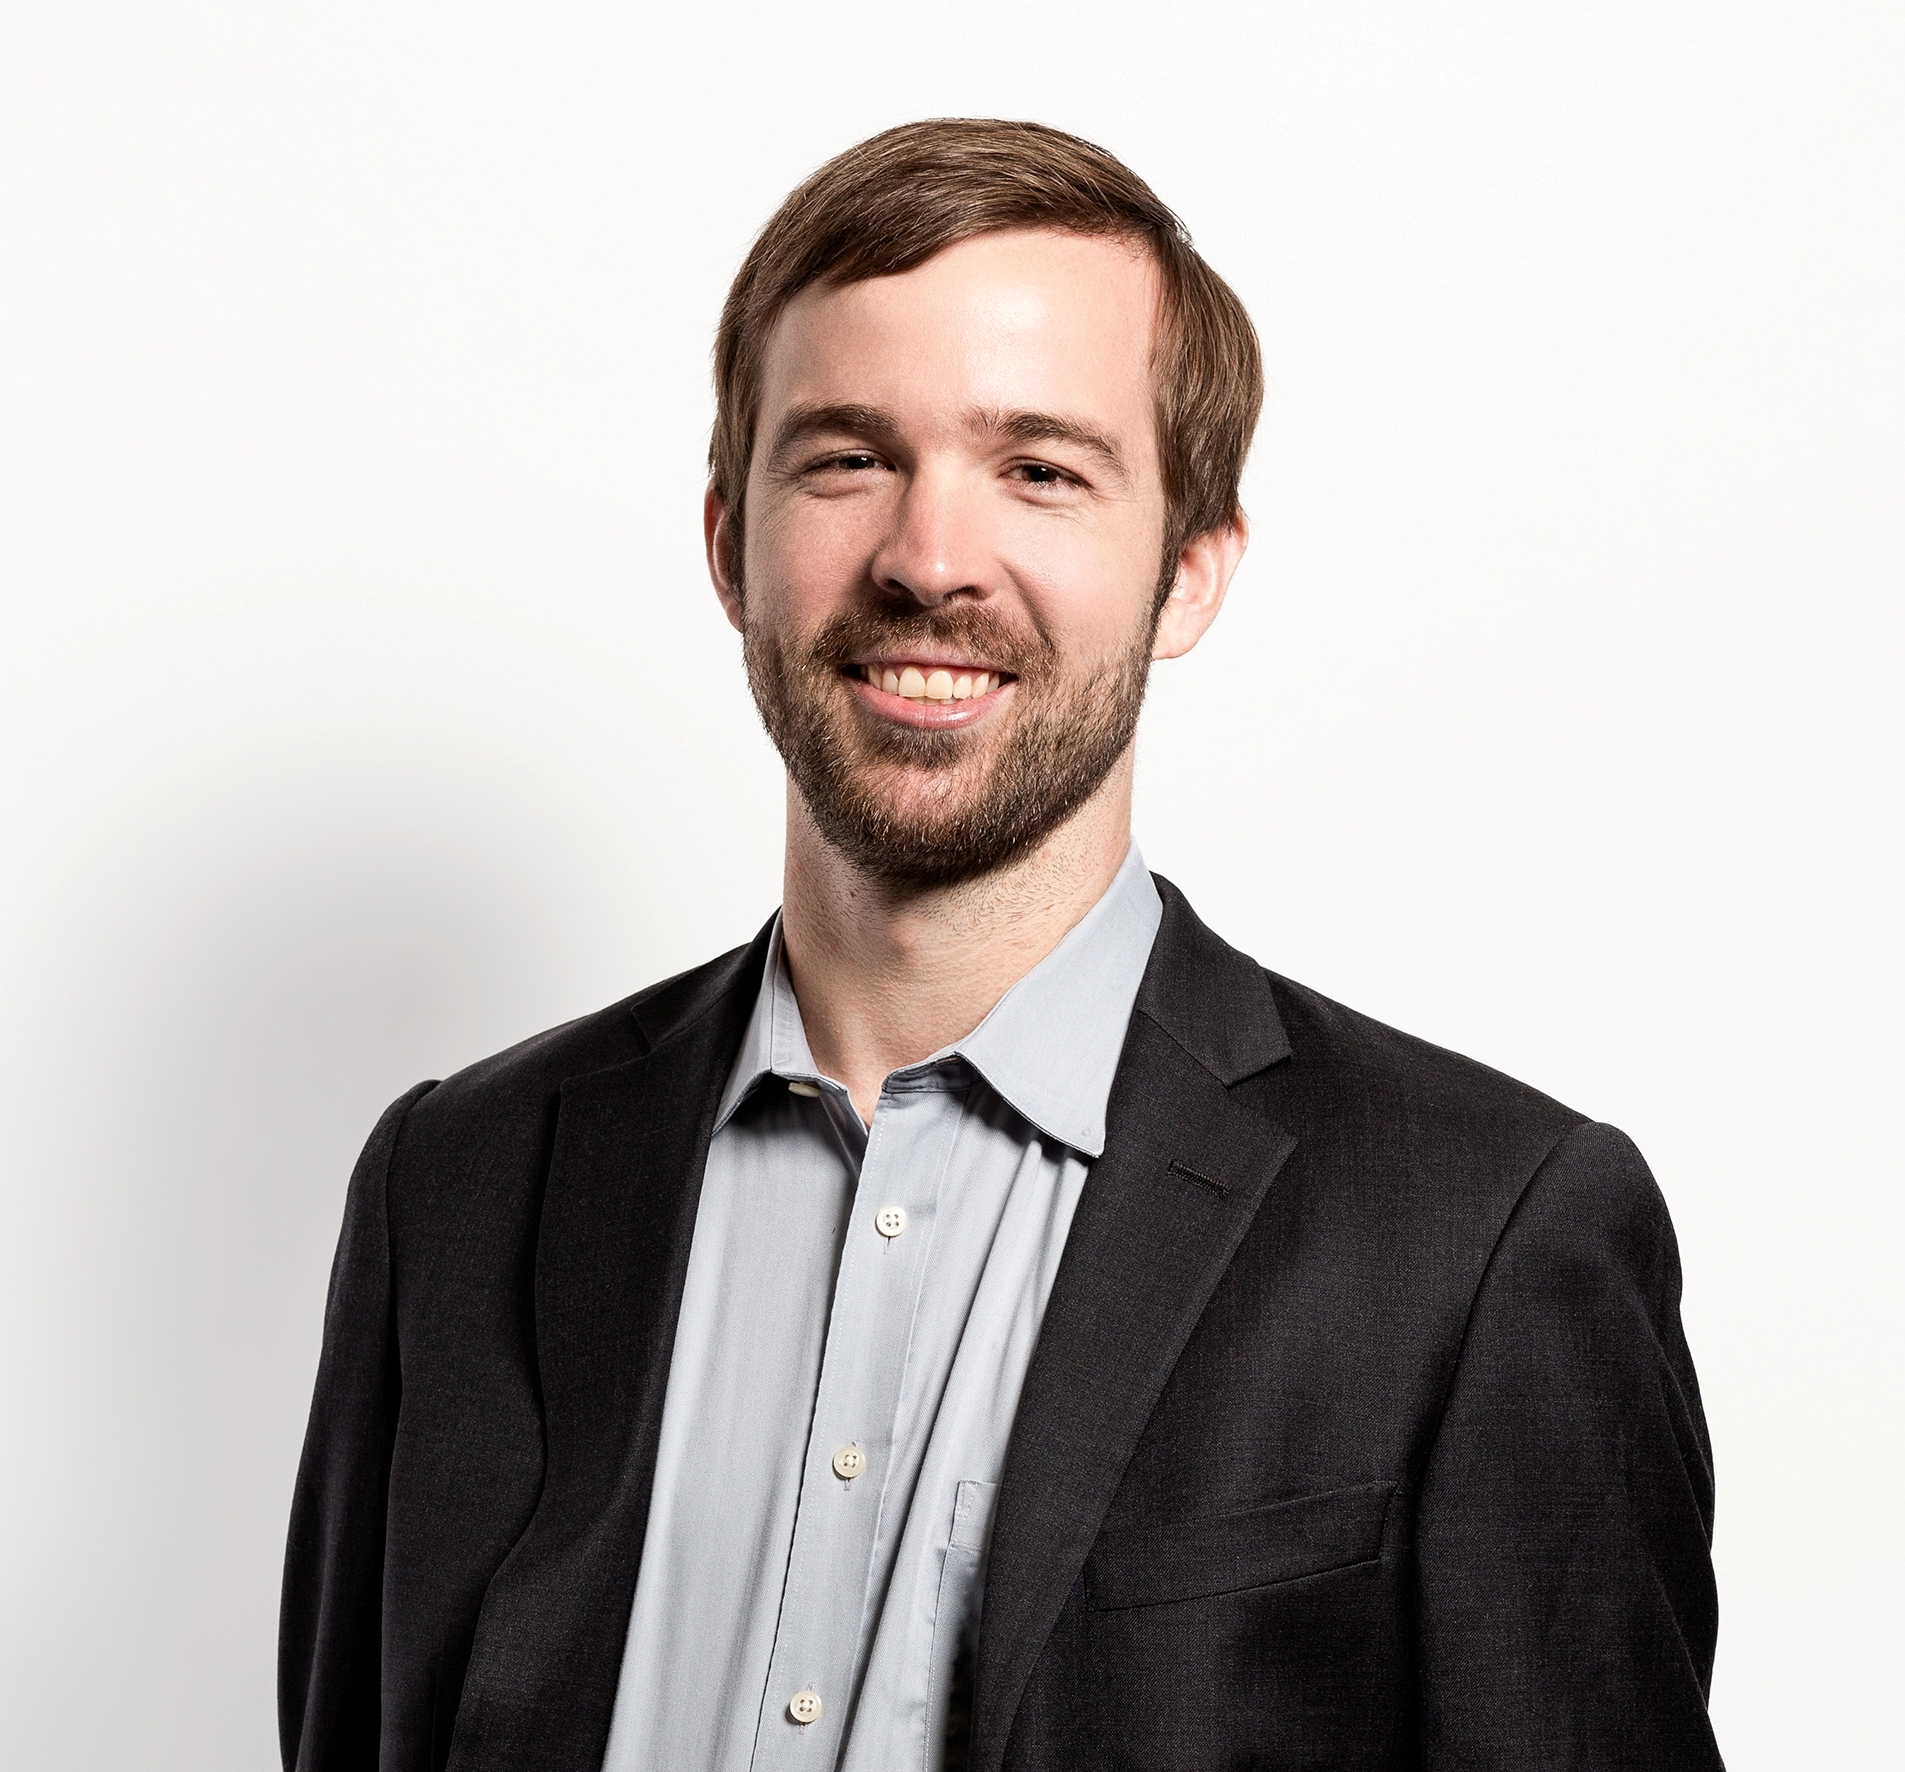 Rob Toews - Investor | Highland Capital PartnersBefore Highland, Rob did strategy at Zoox and earned his JD/MBA from Harvard. In this episode we discuss how AV development is creating opportunities in AI, simulation, and mapping, why Tesla doesn't use LiDAR, Apple's acquisition of Drive.ai, and predictions around what current trends mean for the future of the AV landscape.